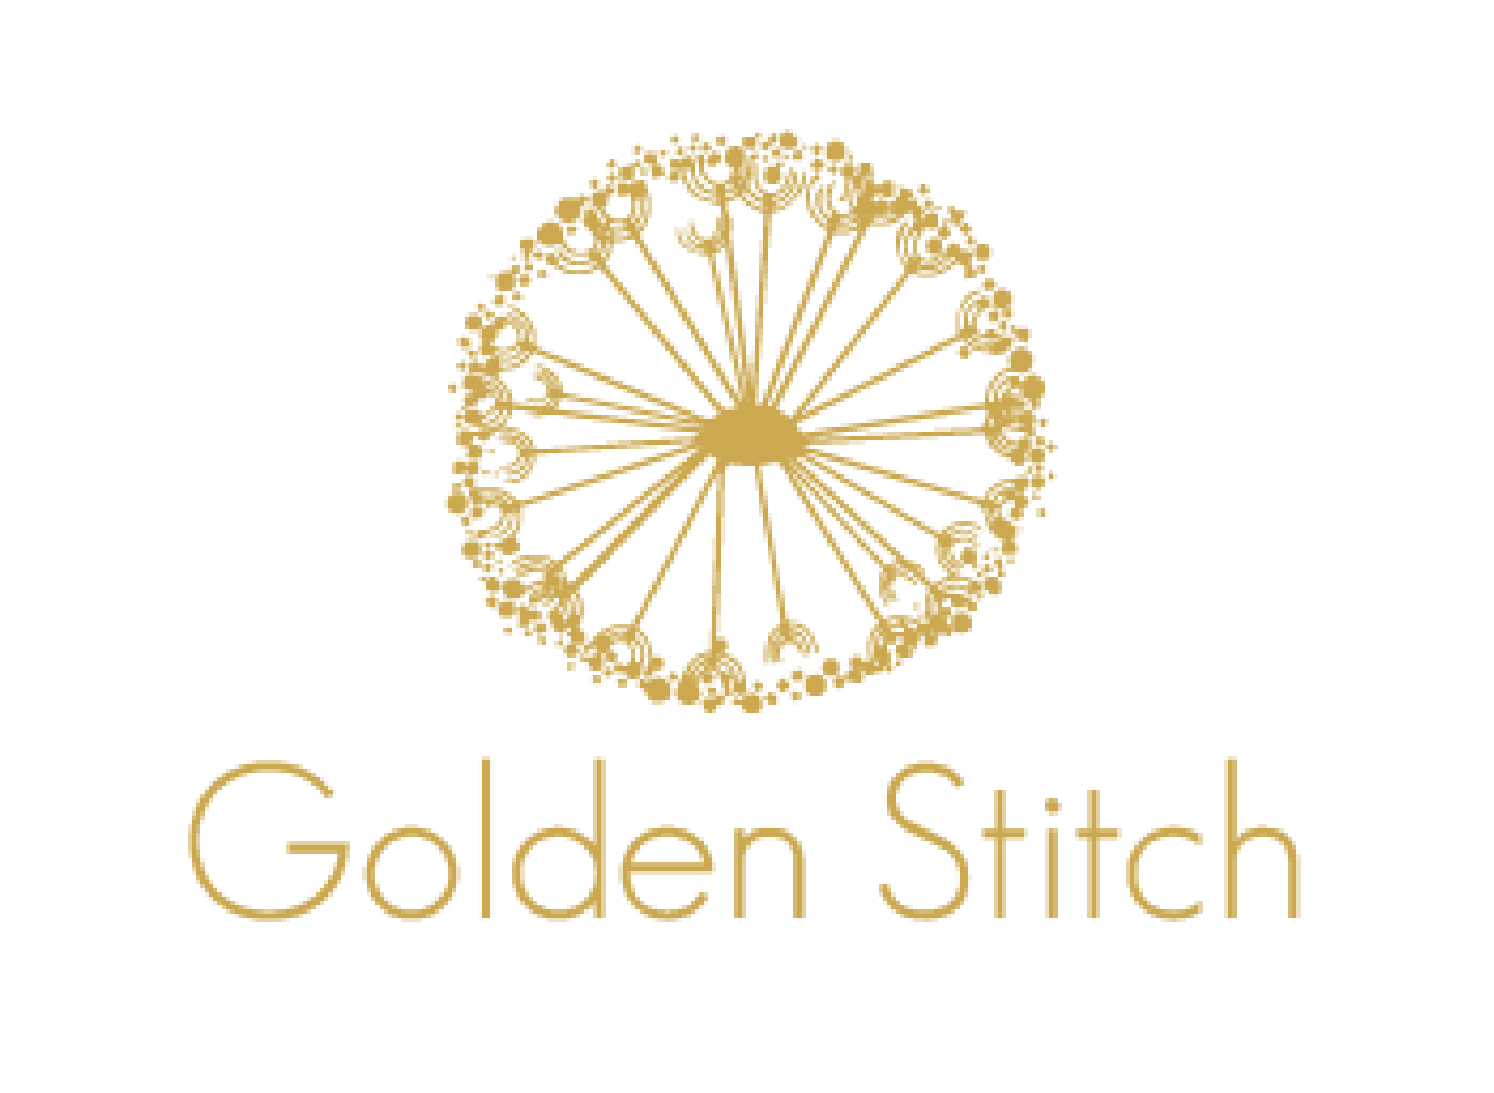 Golden Stitch